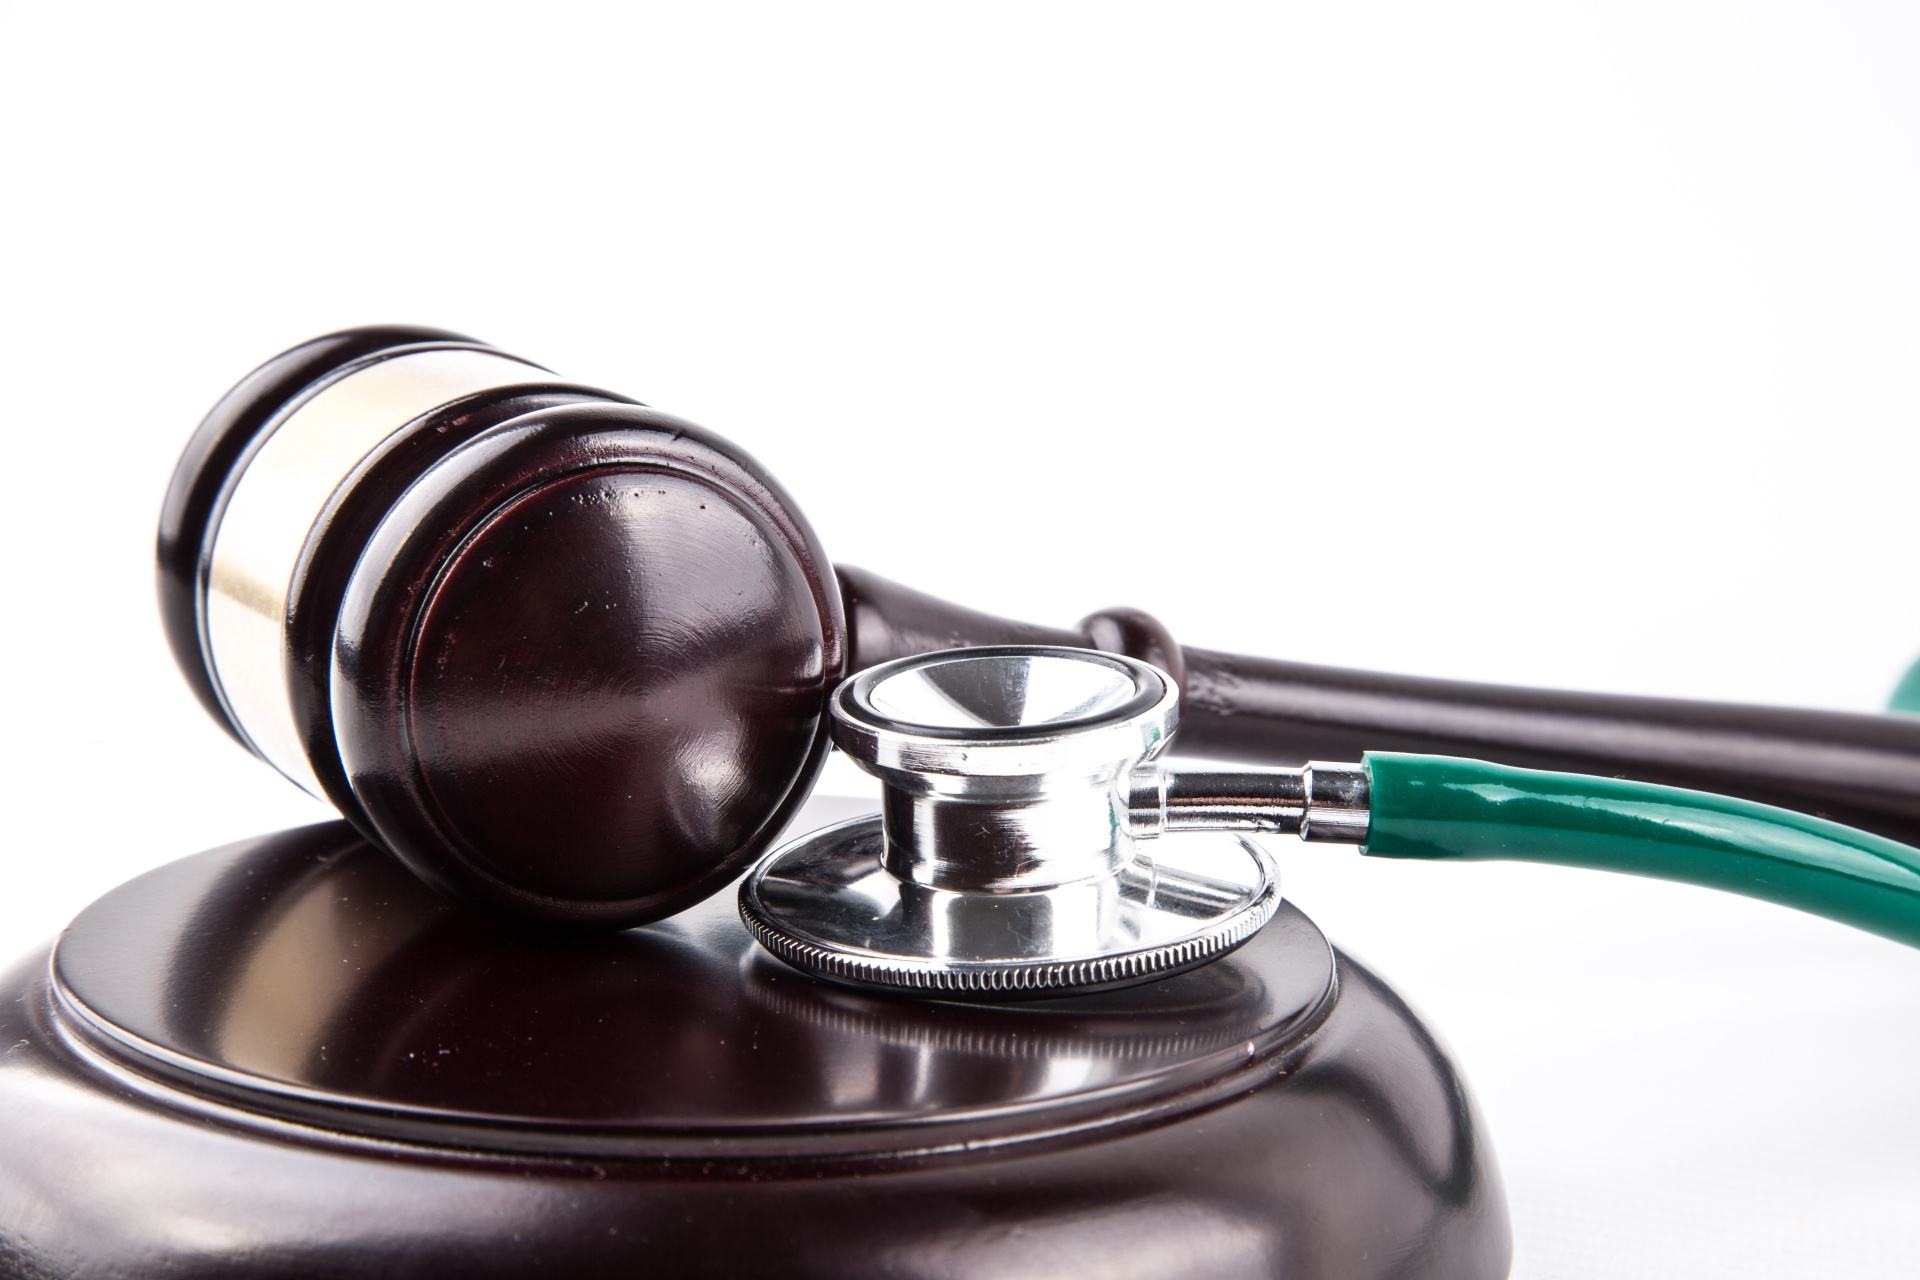 Rodger Walk - Medical Malpractice Attorney in Cincinnati, Ohio